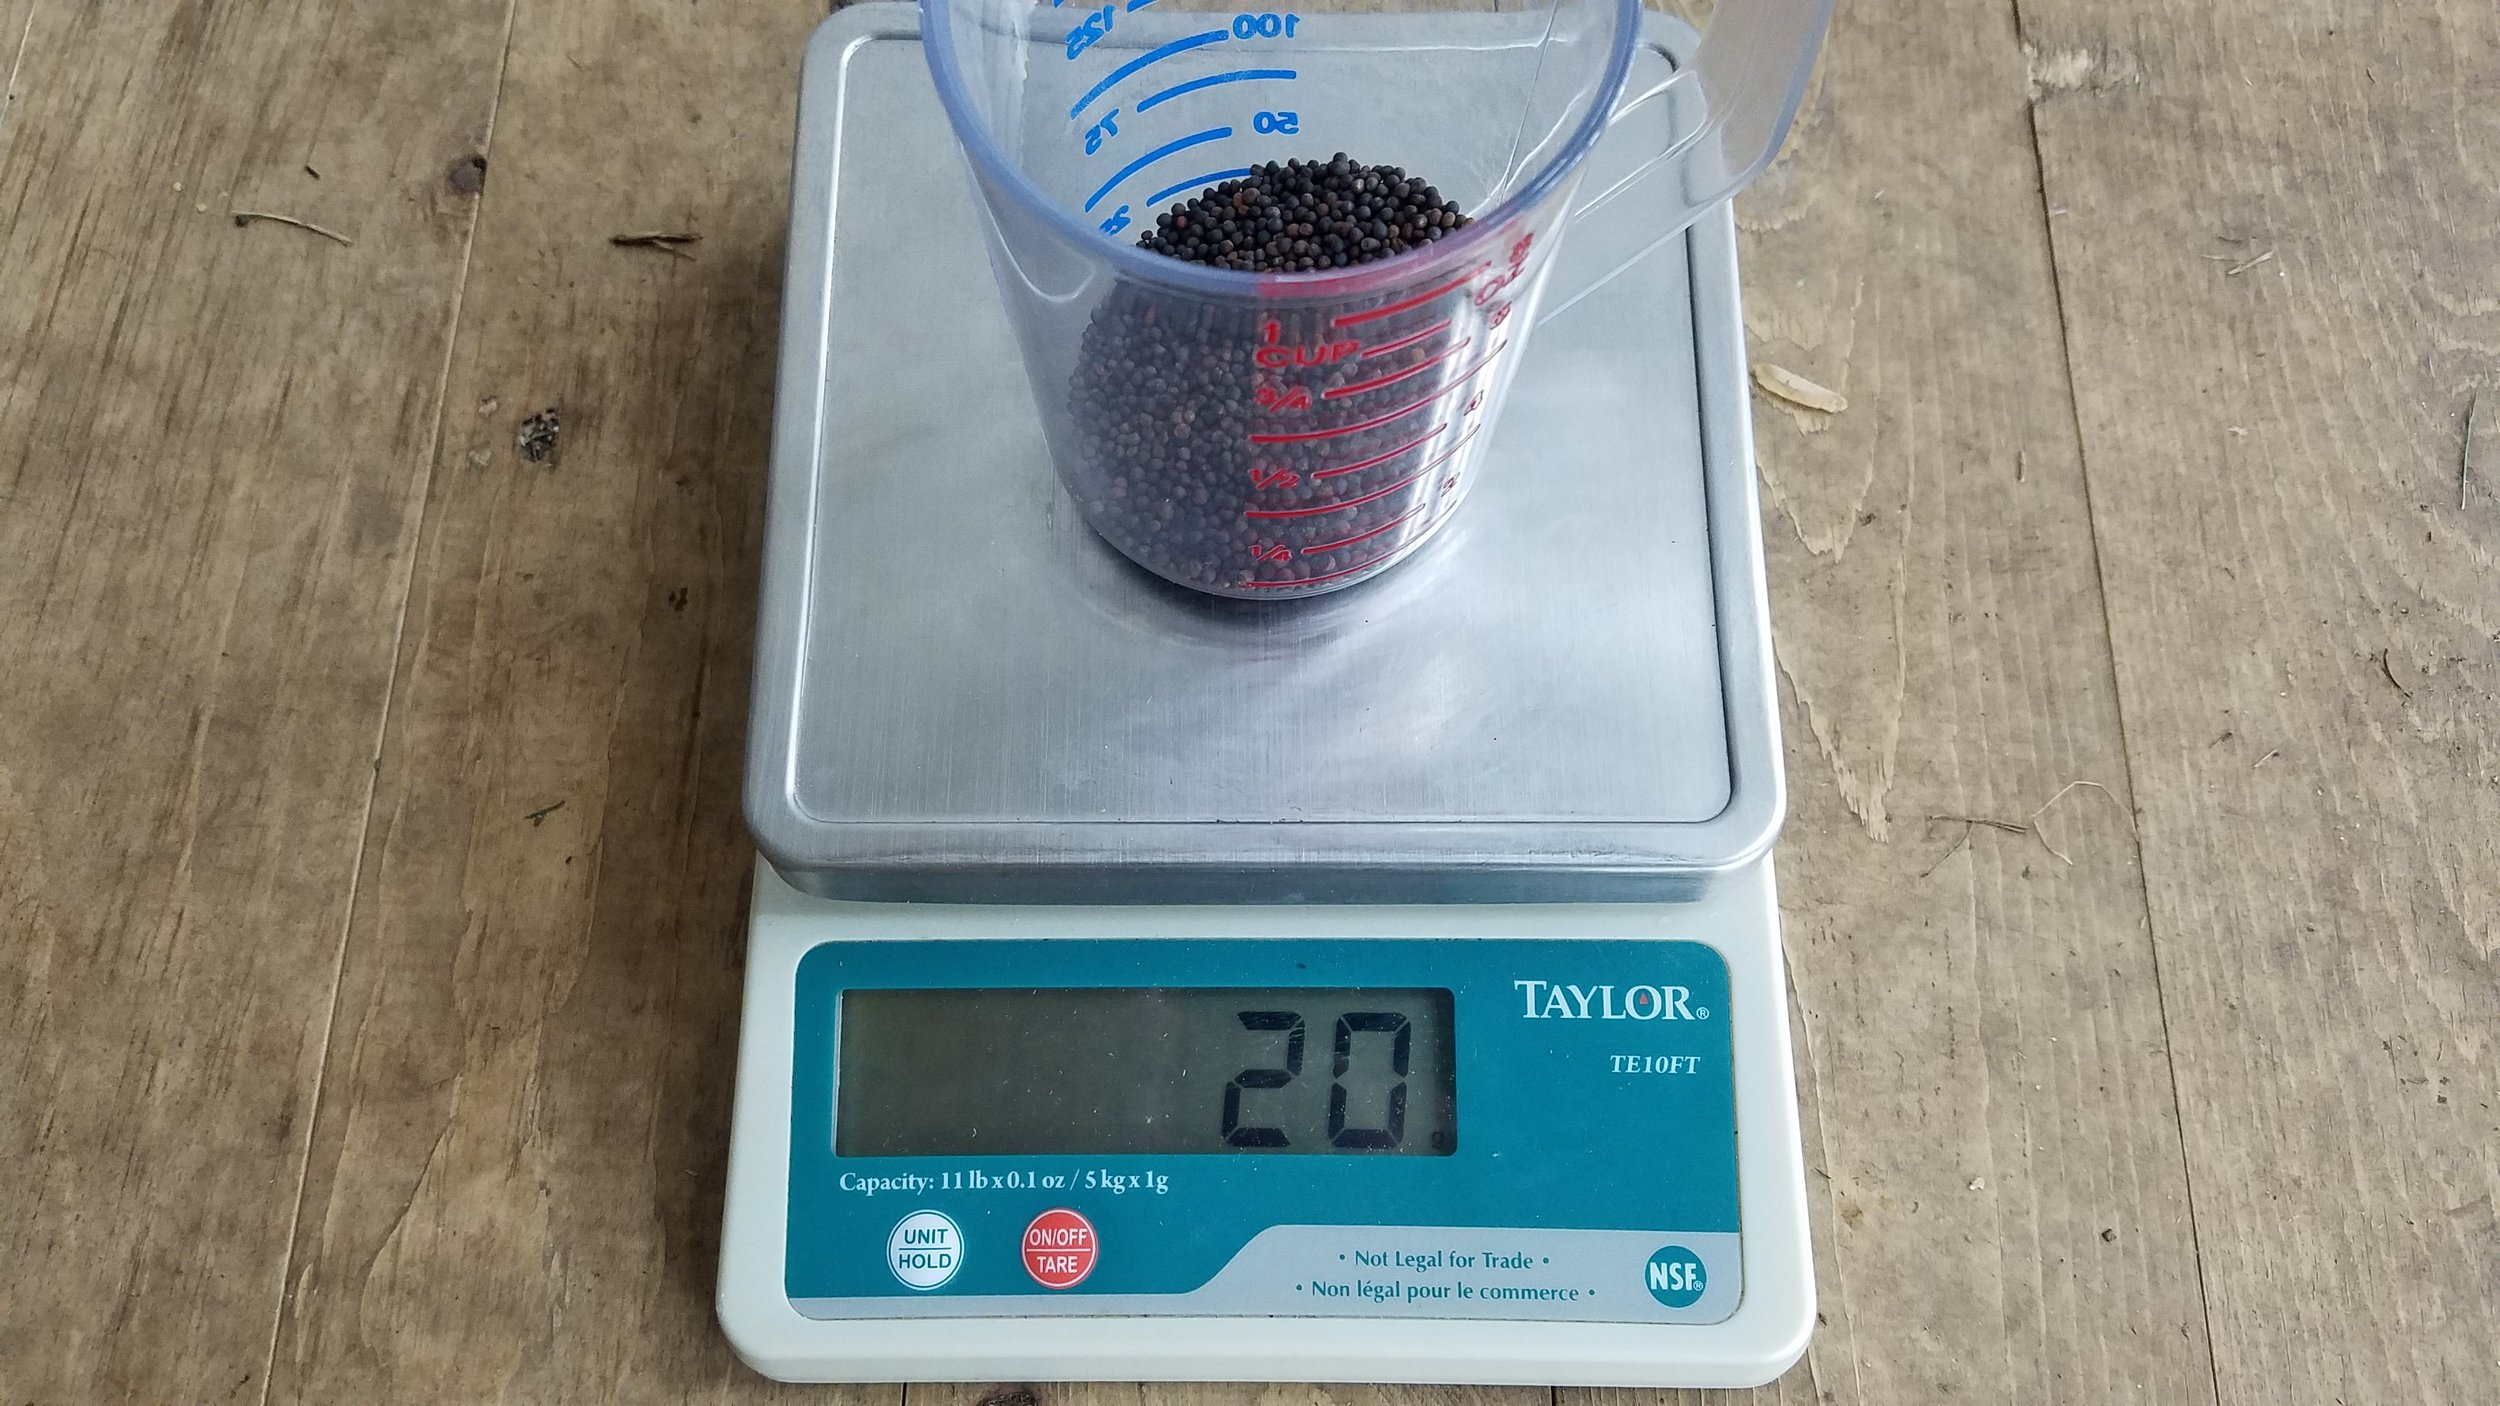 Time to seed! For future reference, your seed weight is 20g.